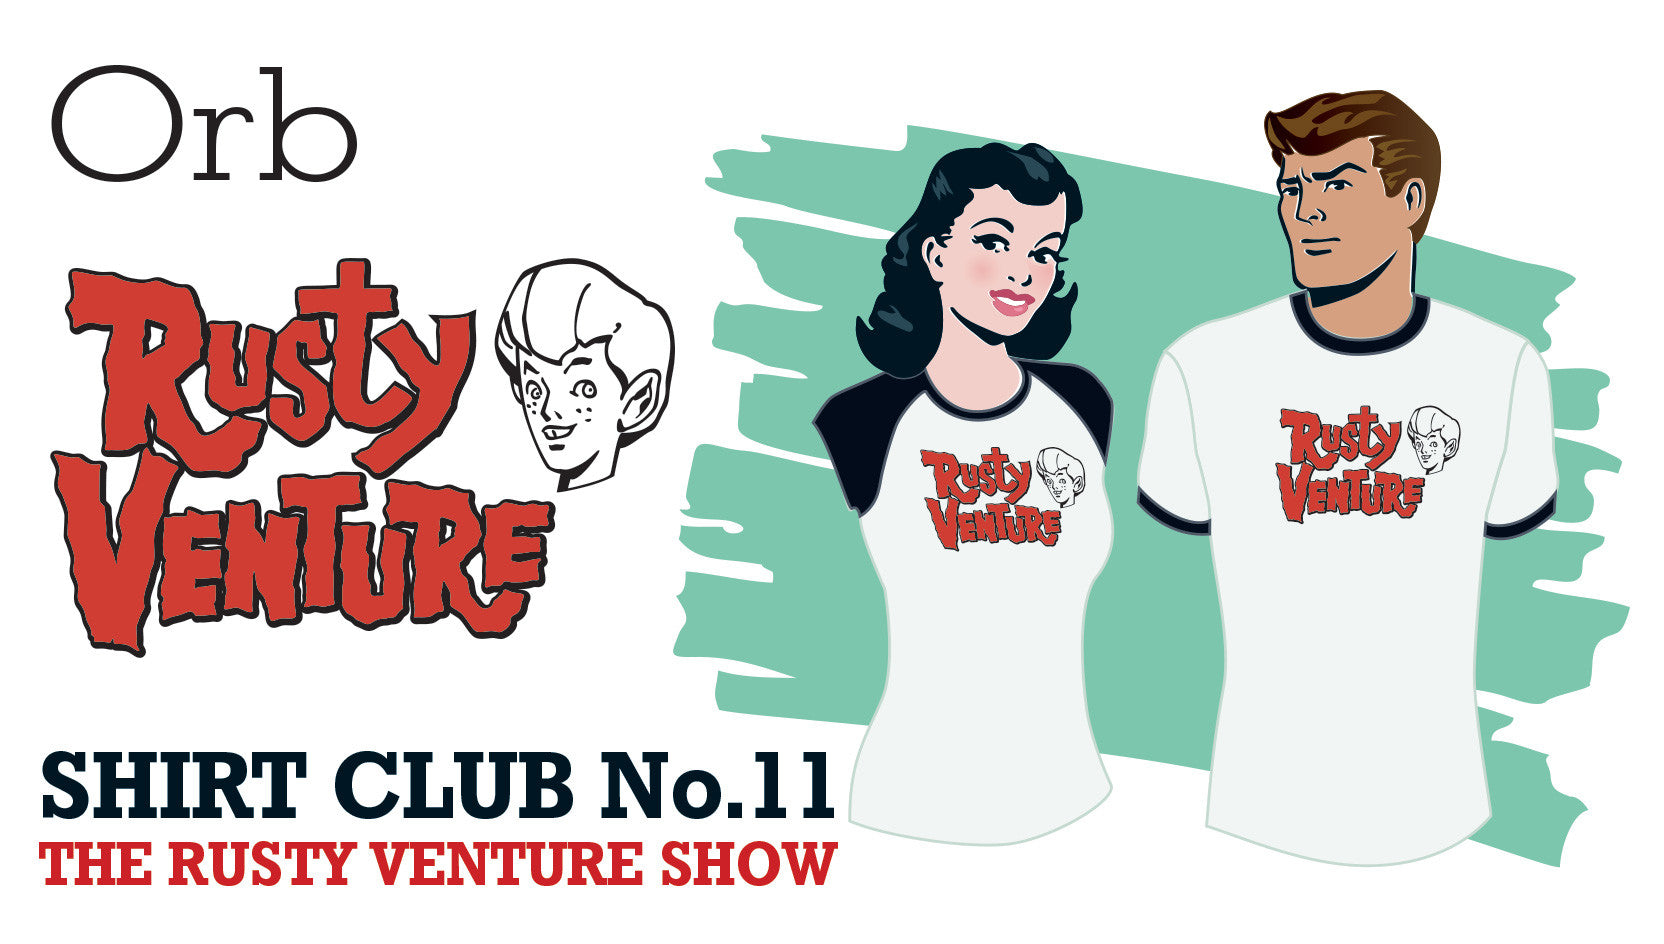 SHIRT CLUB #11: Orb THE RUSTY VENTURE SHOW